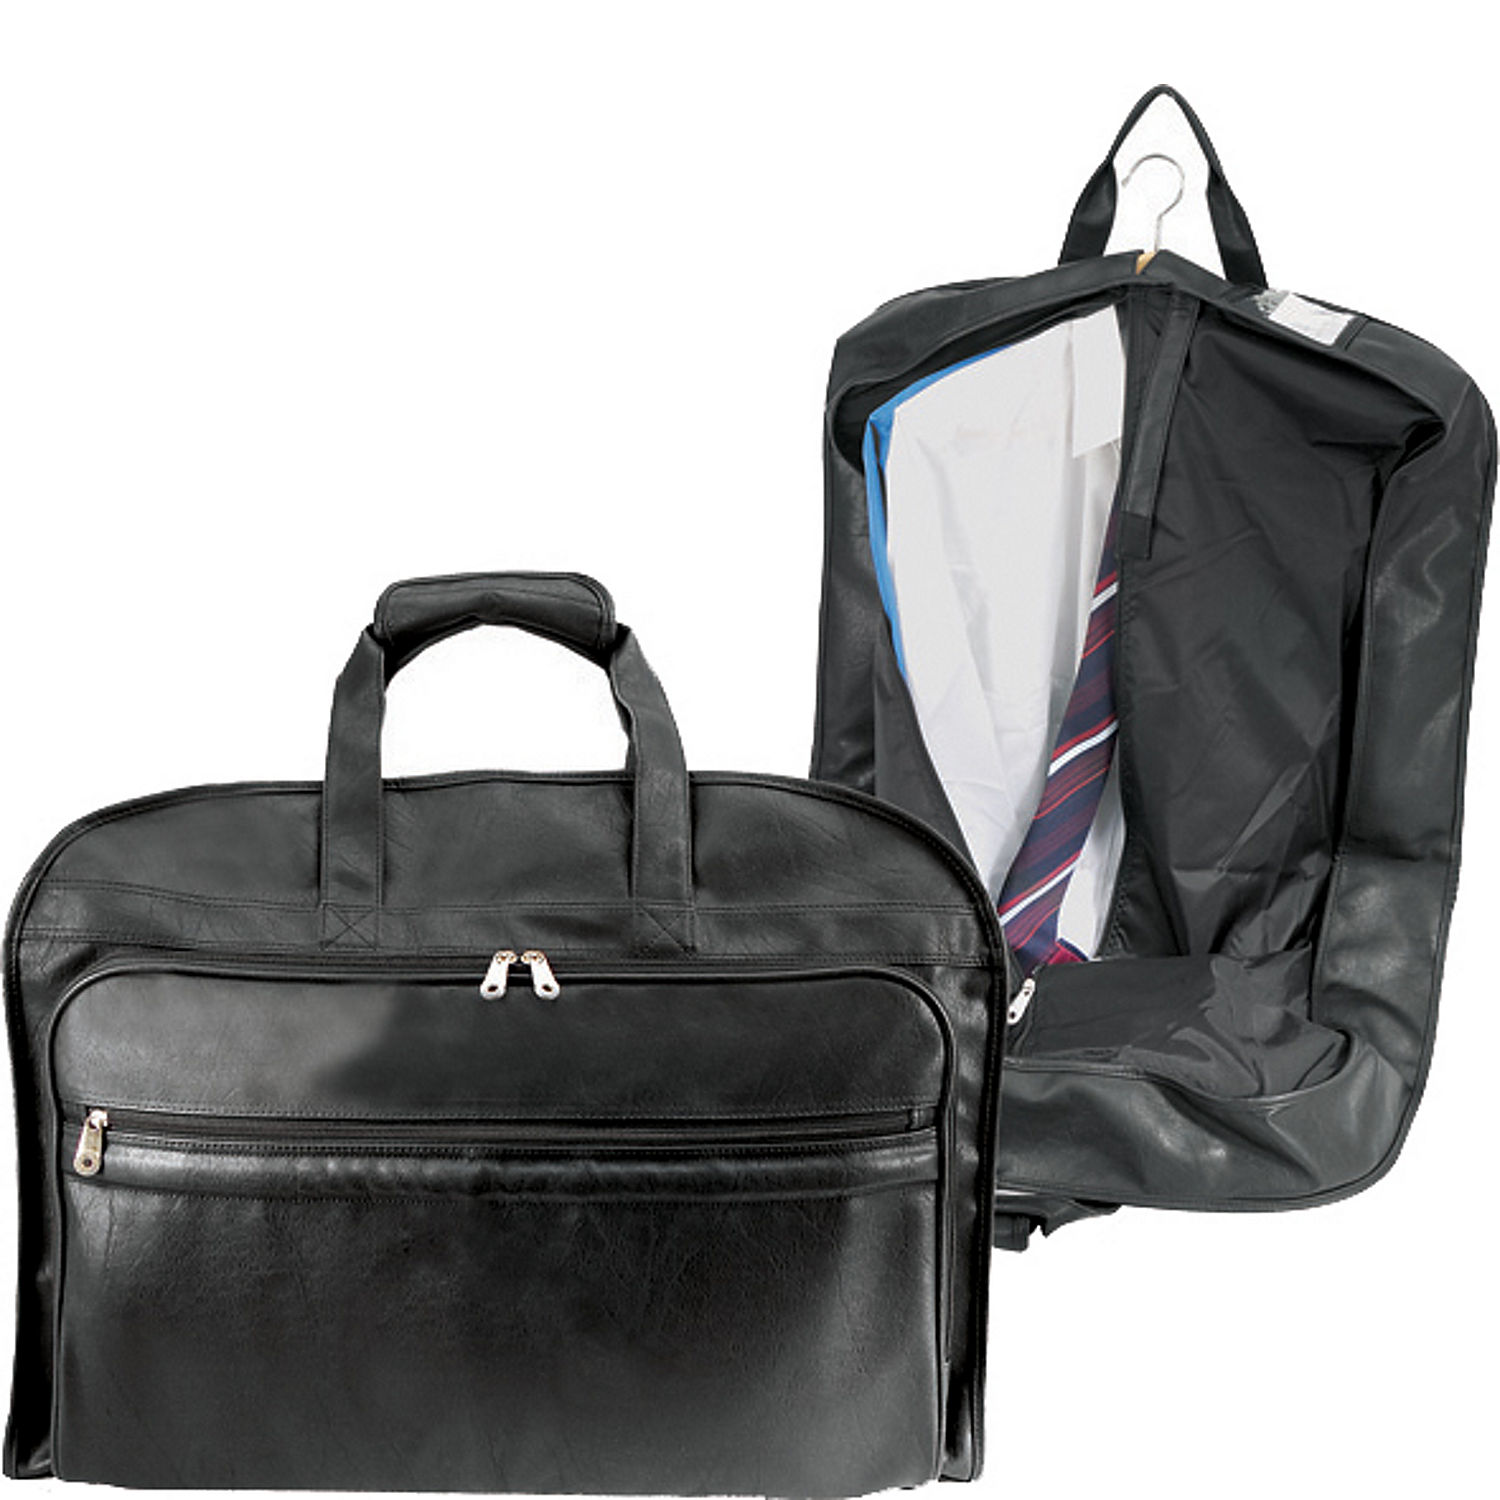 u s traveler koskin leather carry on garment bag